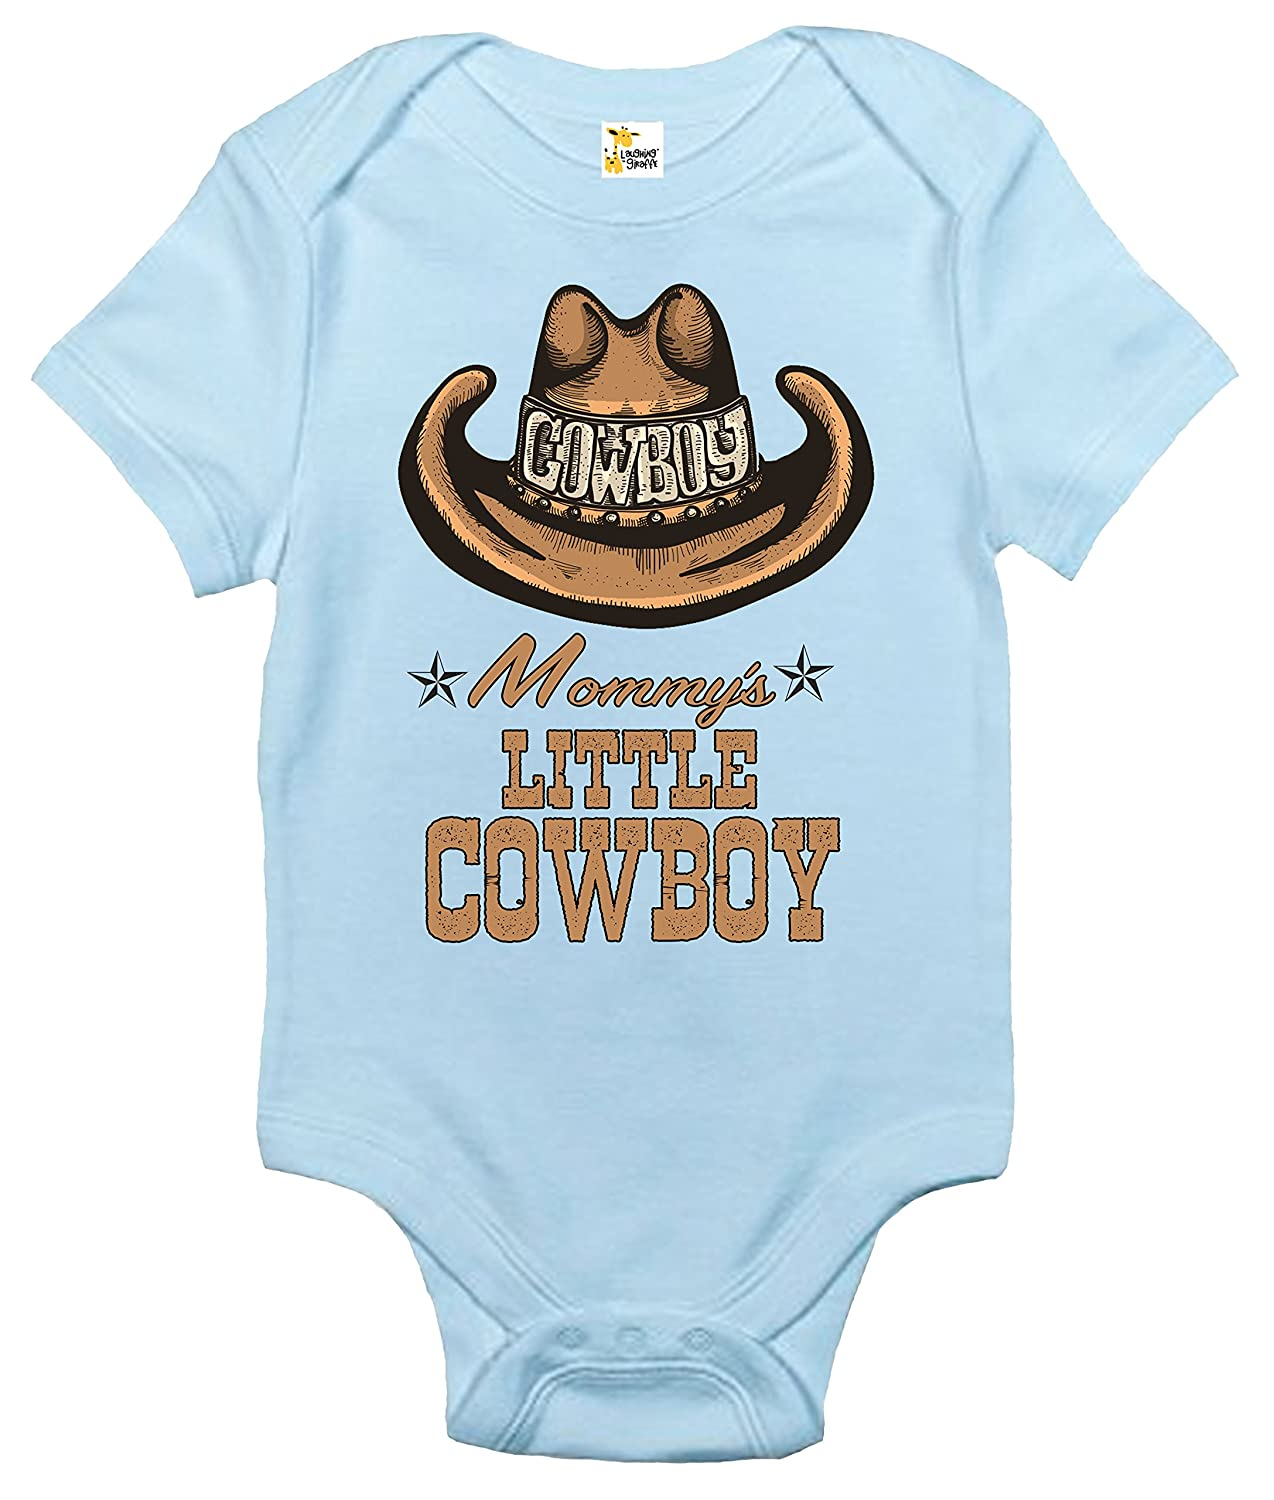 Rapunzie Baby Bodysuit - Mommy's Little Cowboy Cute Western Baby Clothes for Infants LG2200